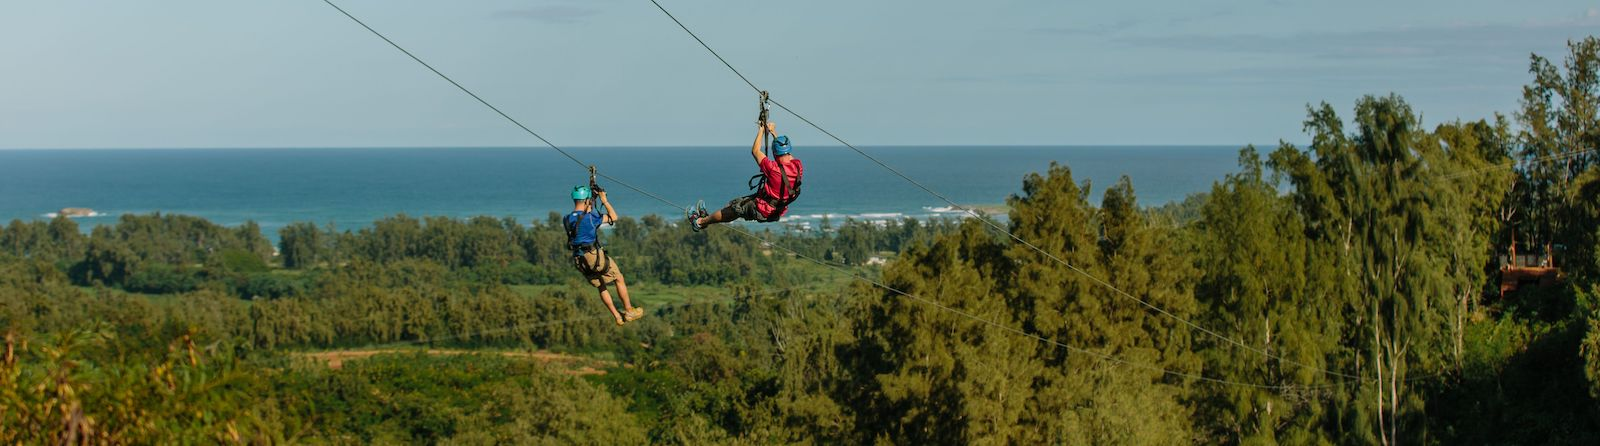 Top 5 Things to Keep in Mind When Ziplining in Oahu